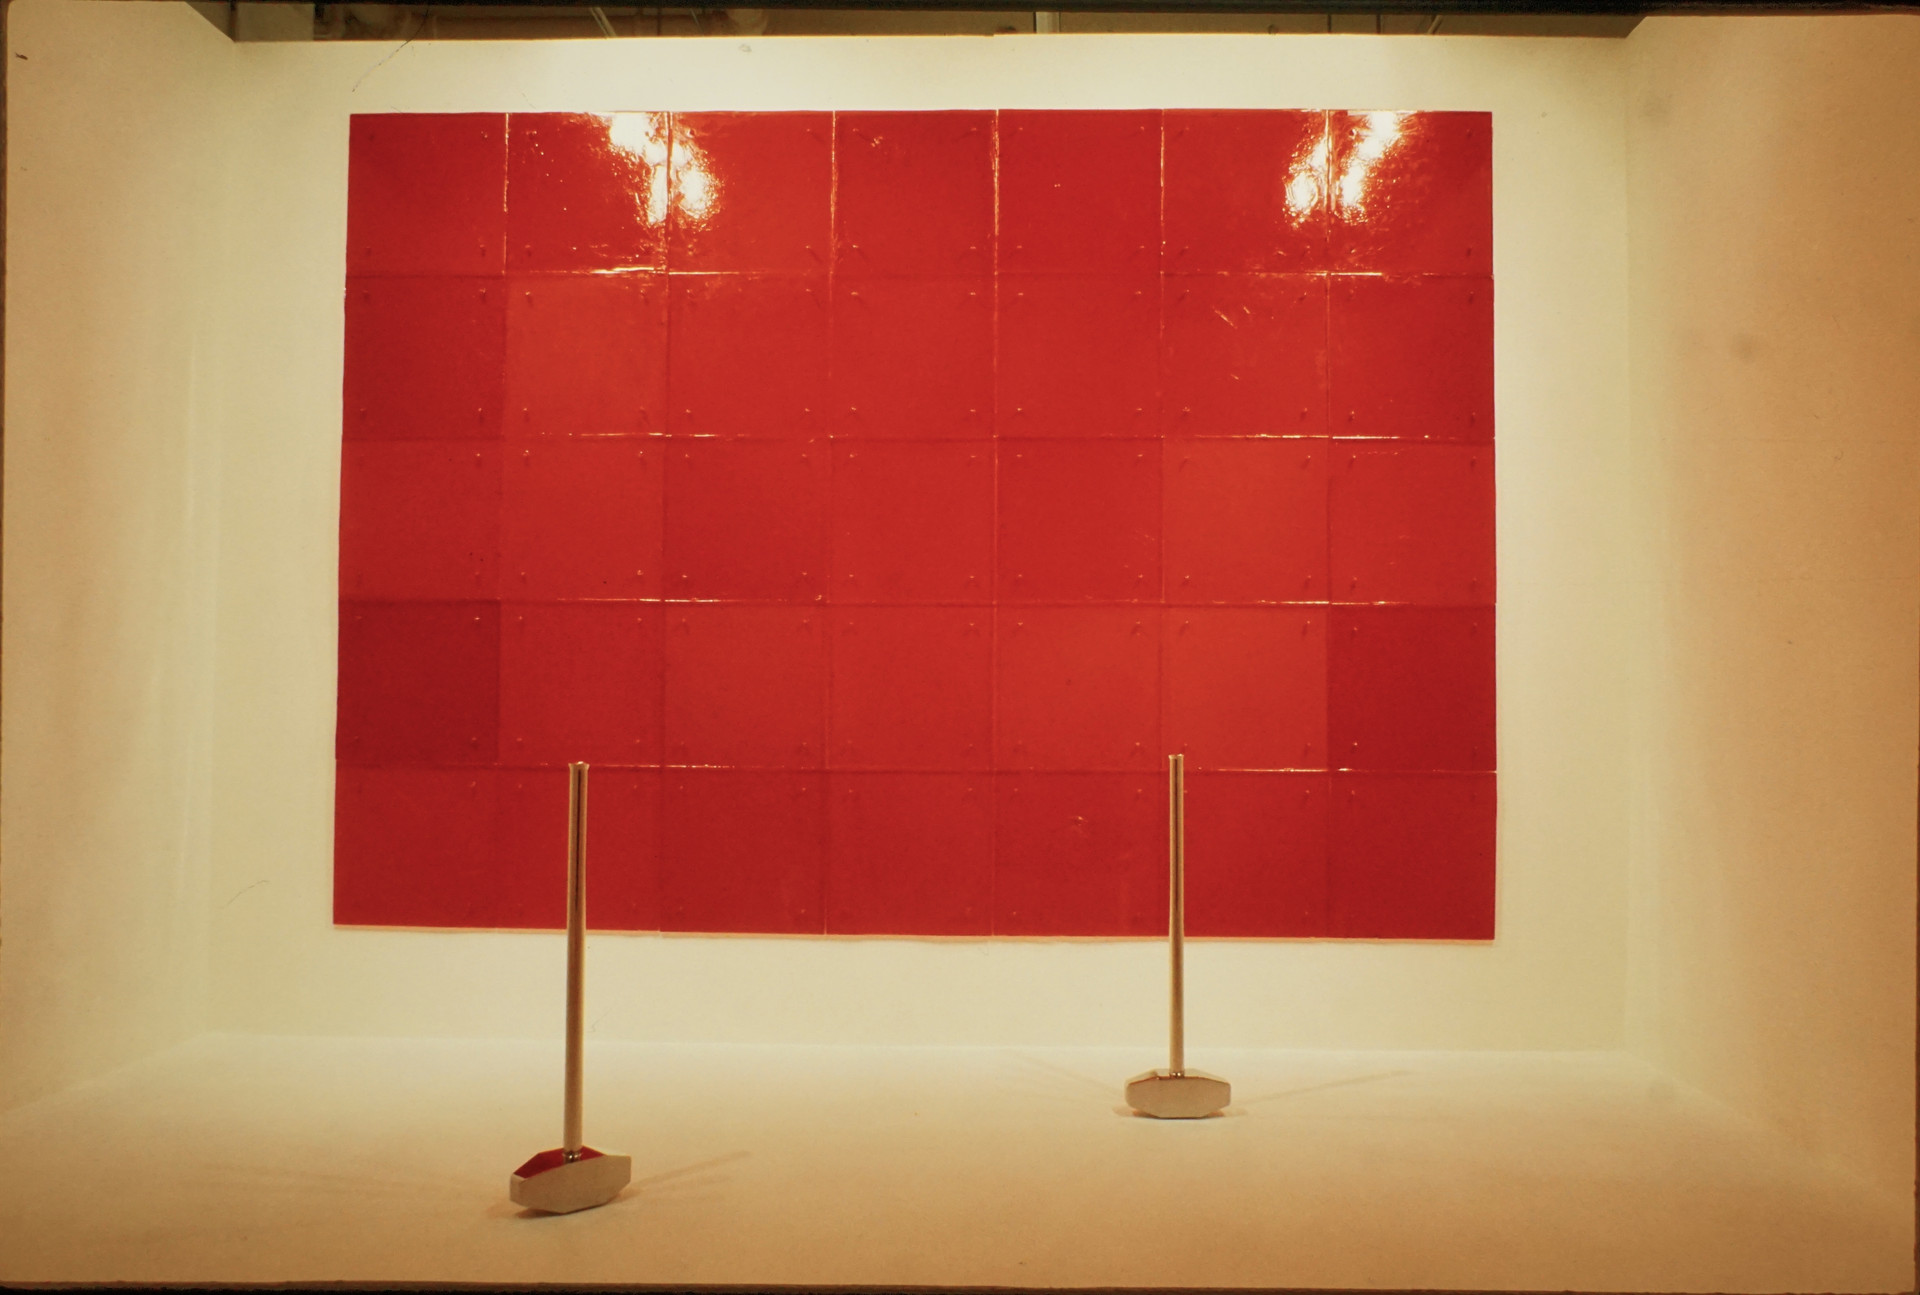 Red Wall, 1996